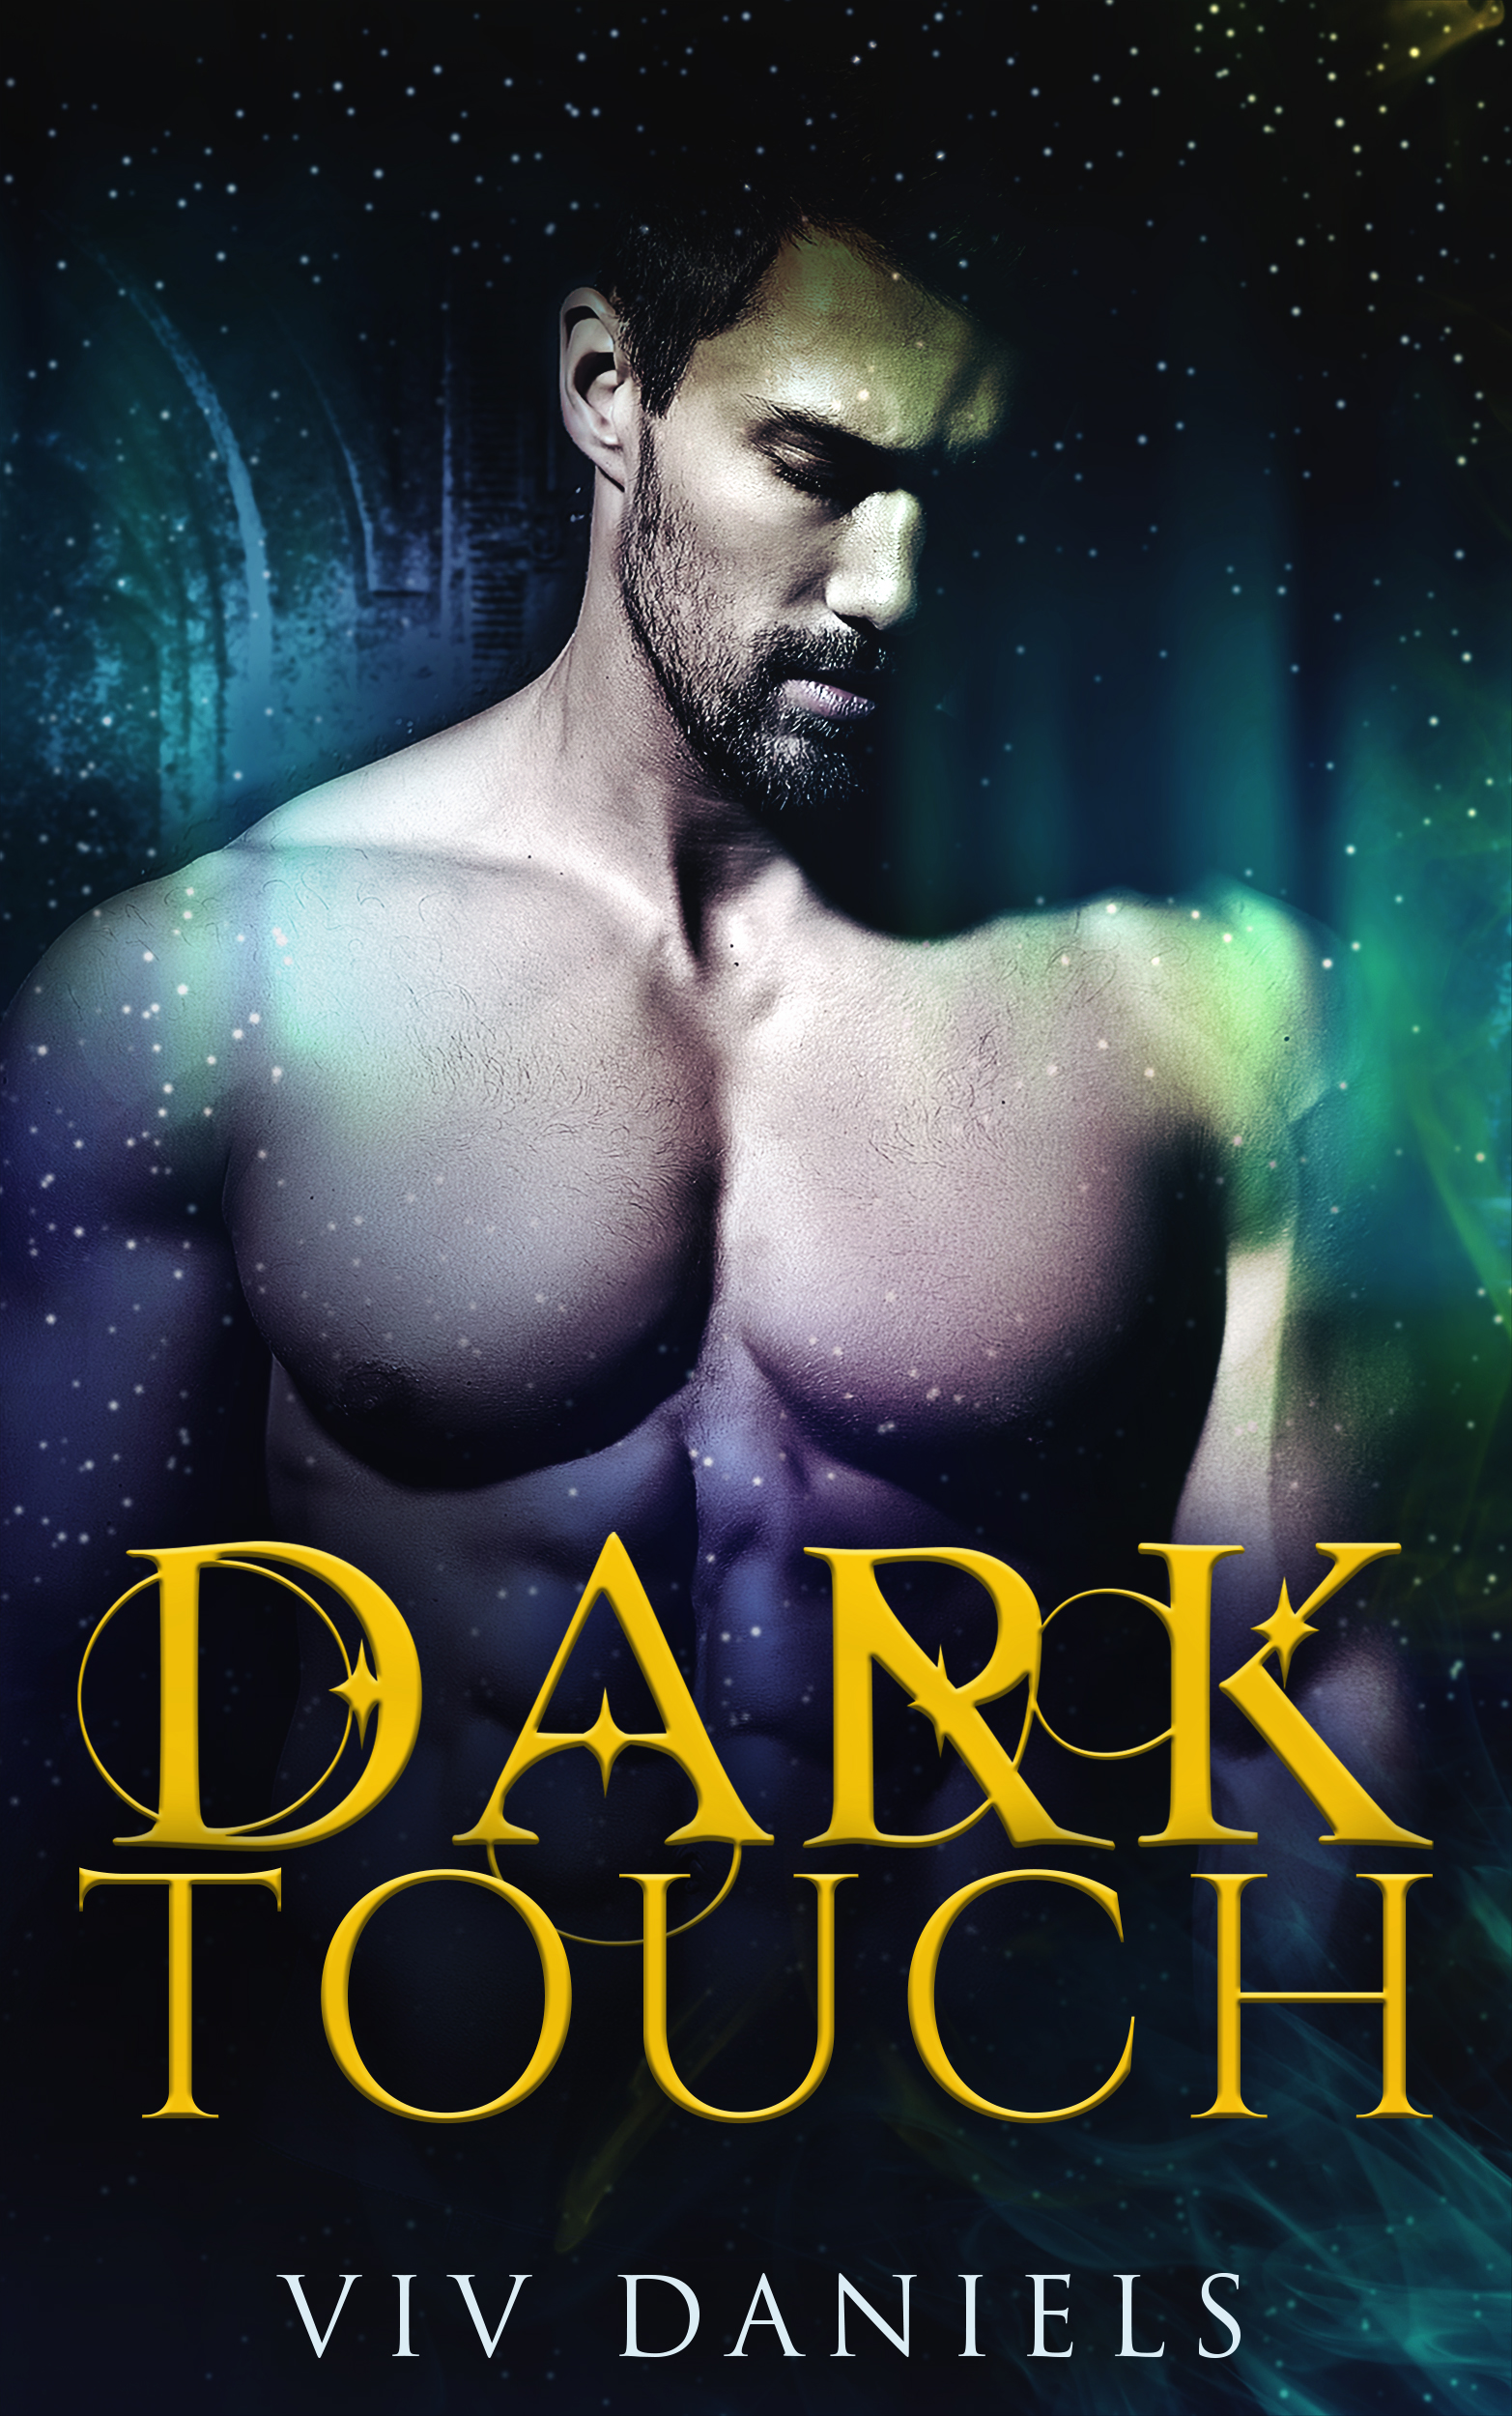 Dark Touch by Viv Daniels